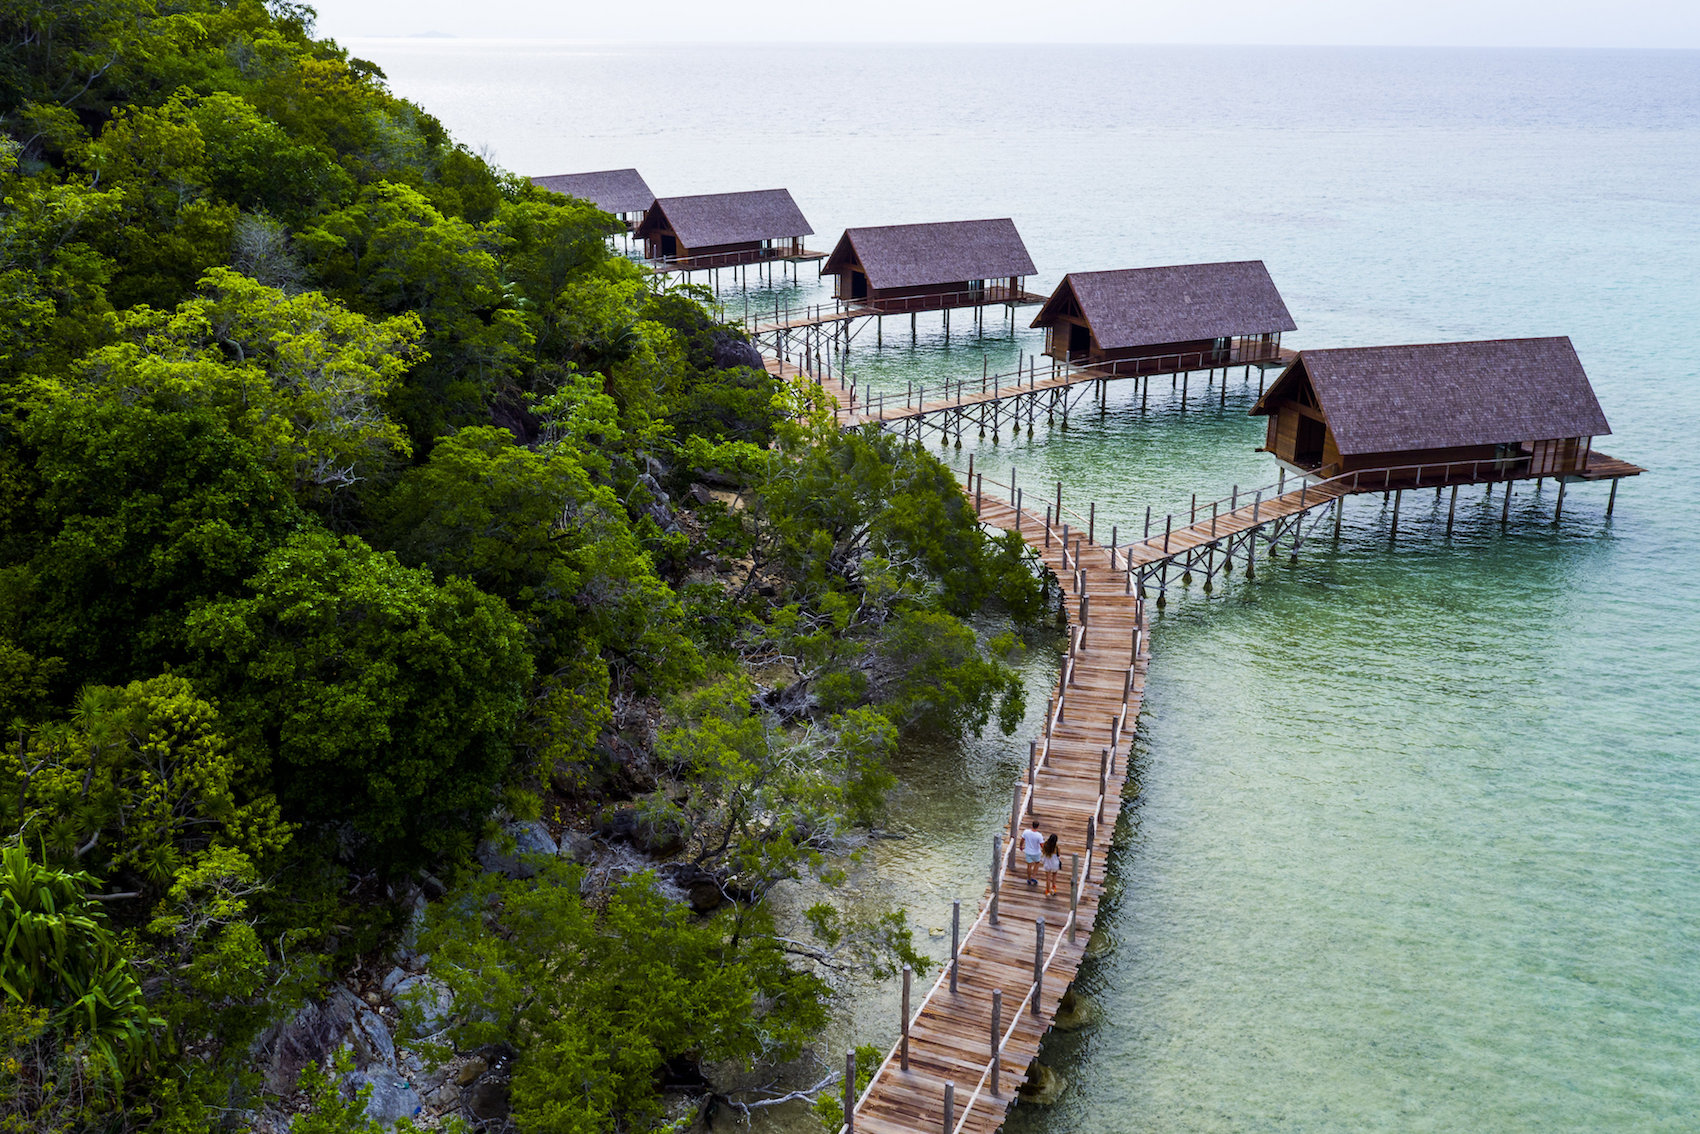 Bawah Island offers eco-friendly luxury escape, just 3 hours from Singapore - Alvinology